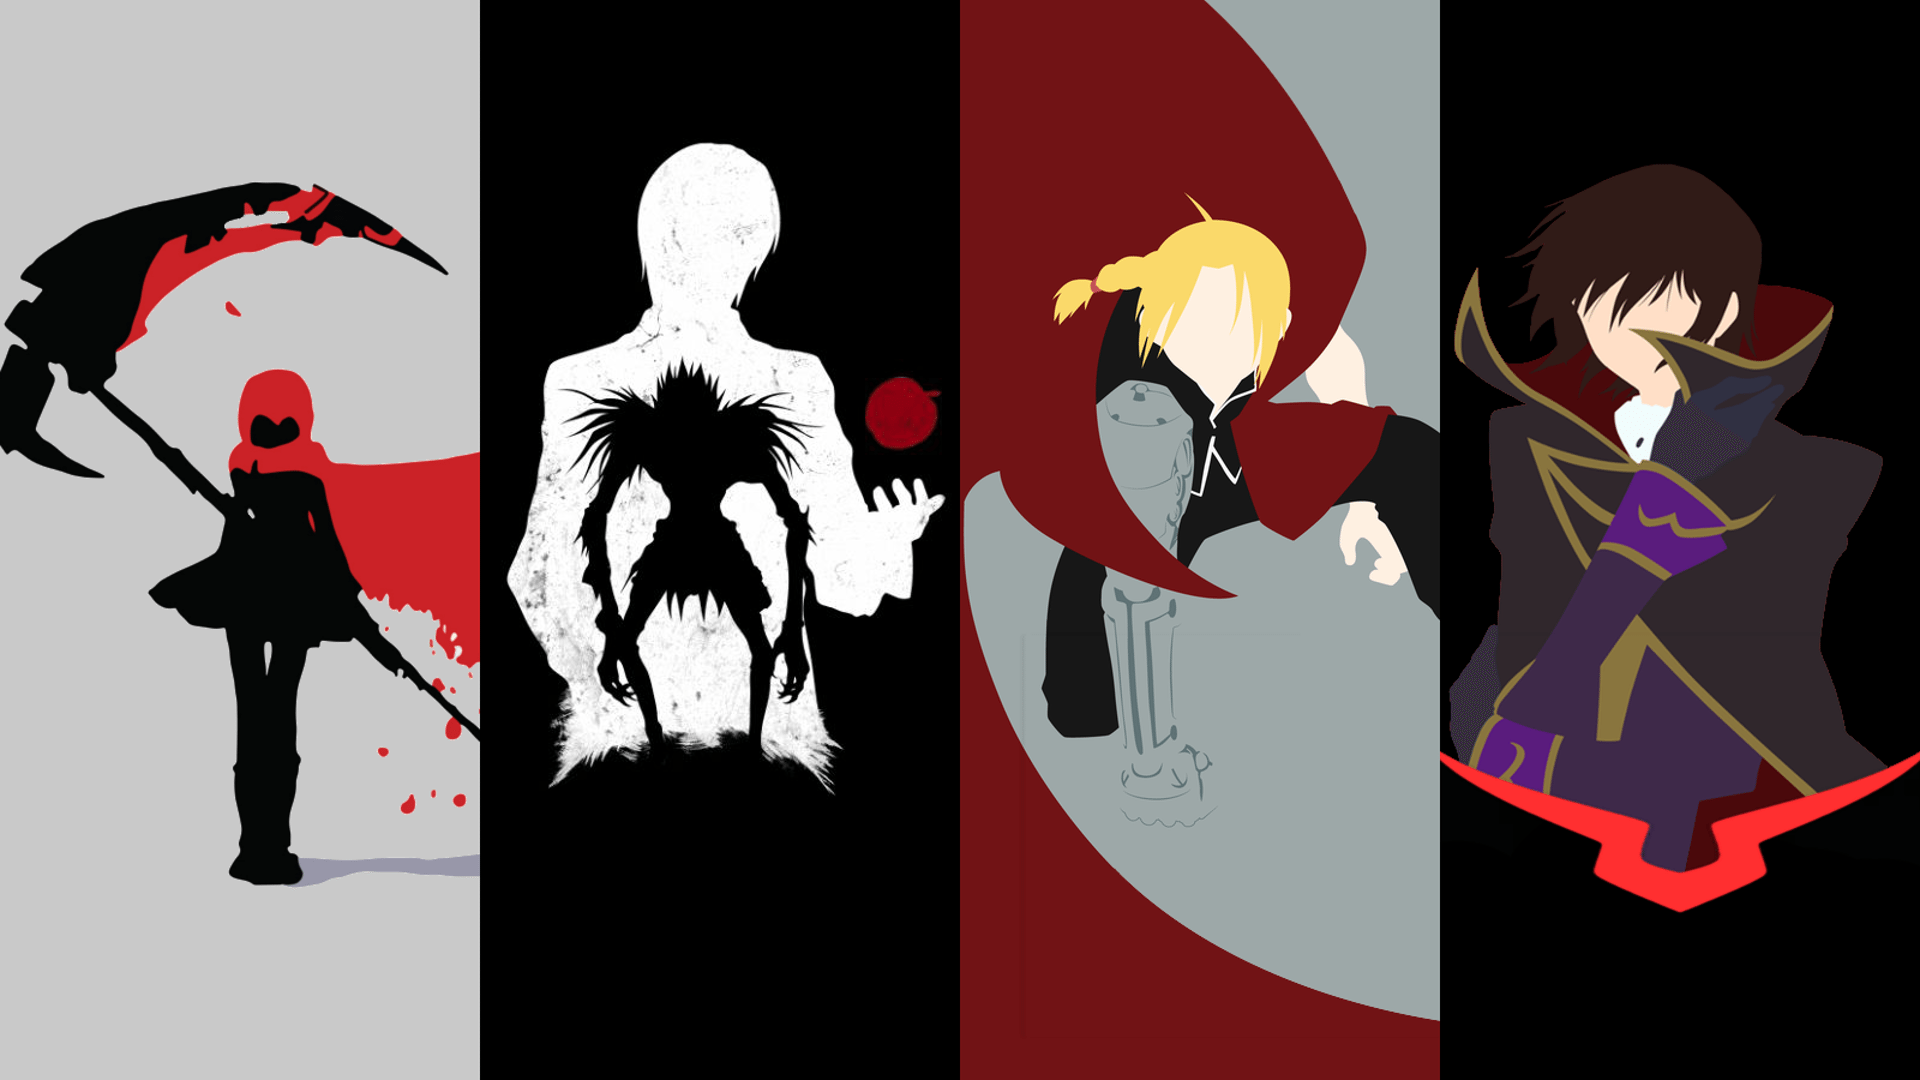 Deathnote, FMA, Code Geass and RWBY wallpaper (1920x1080) HD.